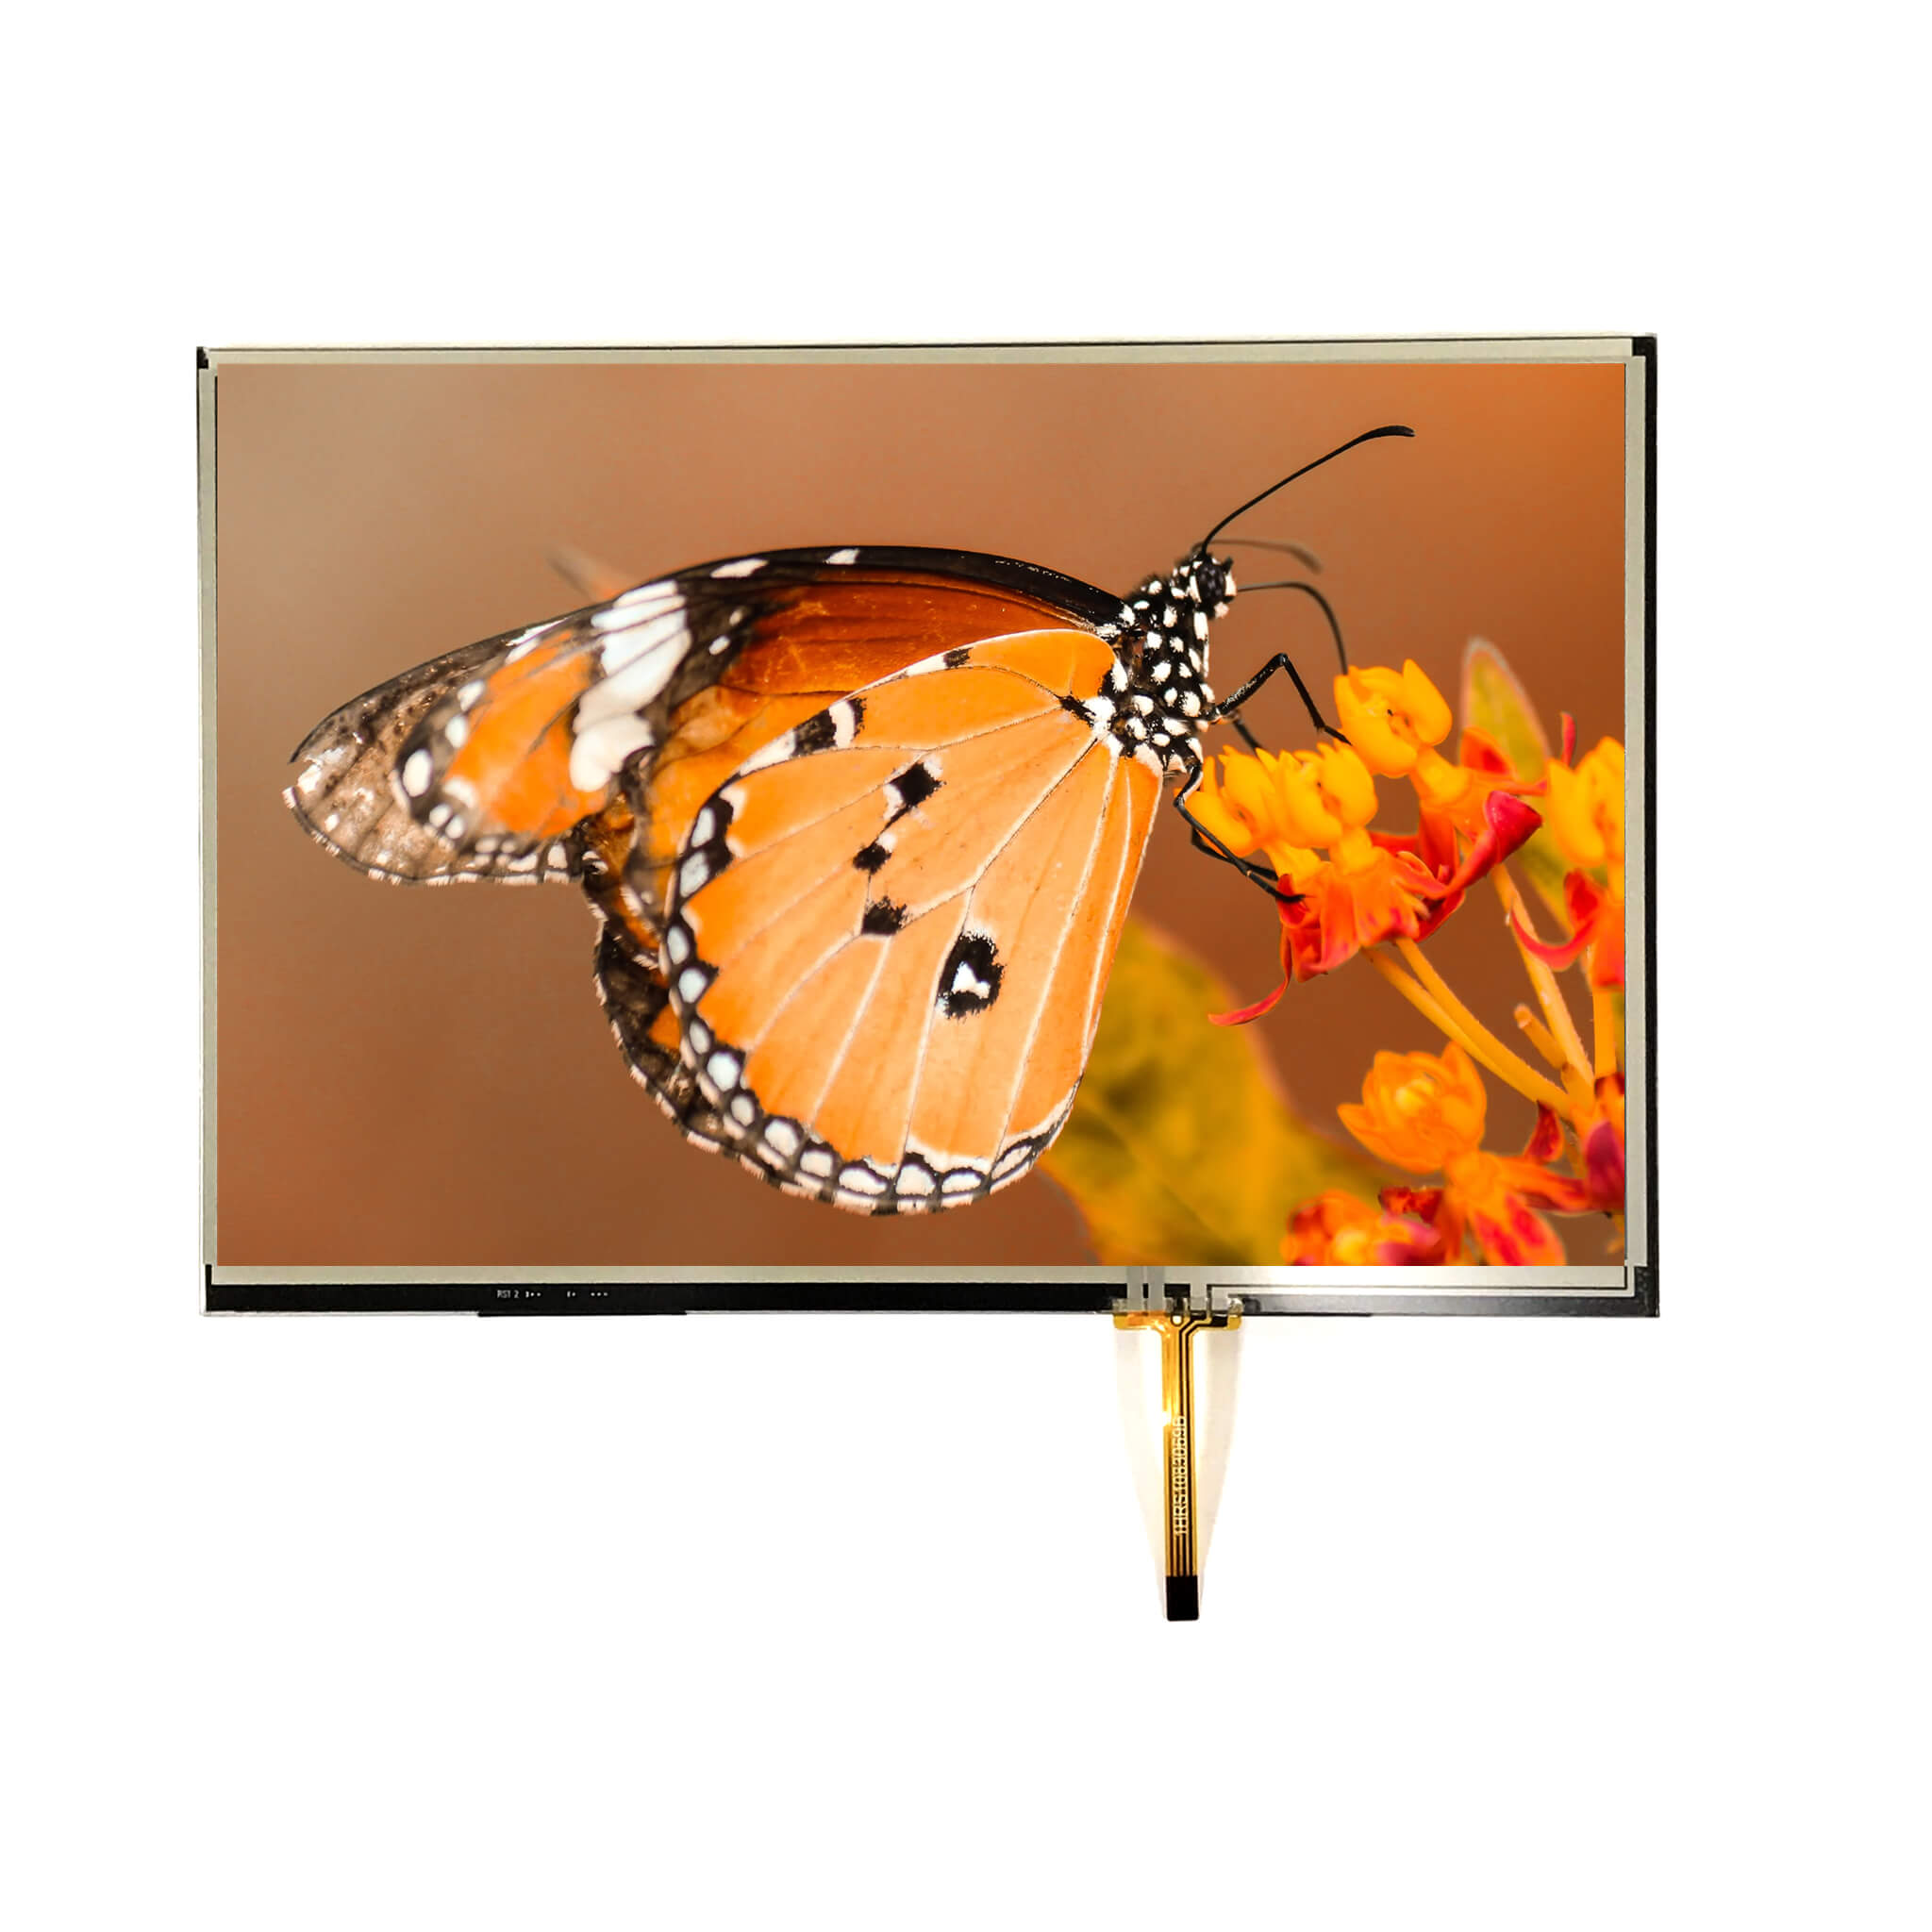 "10.1"" Sunlight Readable IPS, 1280x800, 800 Nits with Resistive Touch Panel"